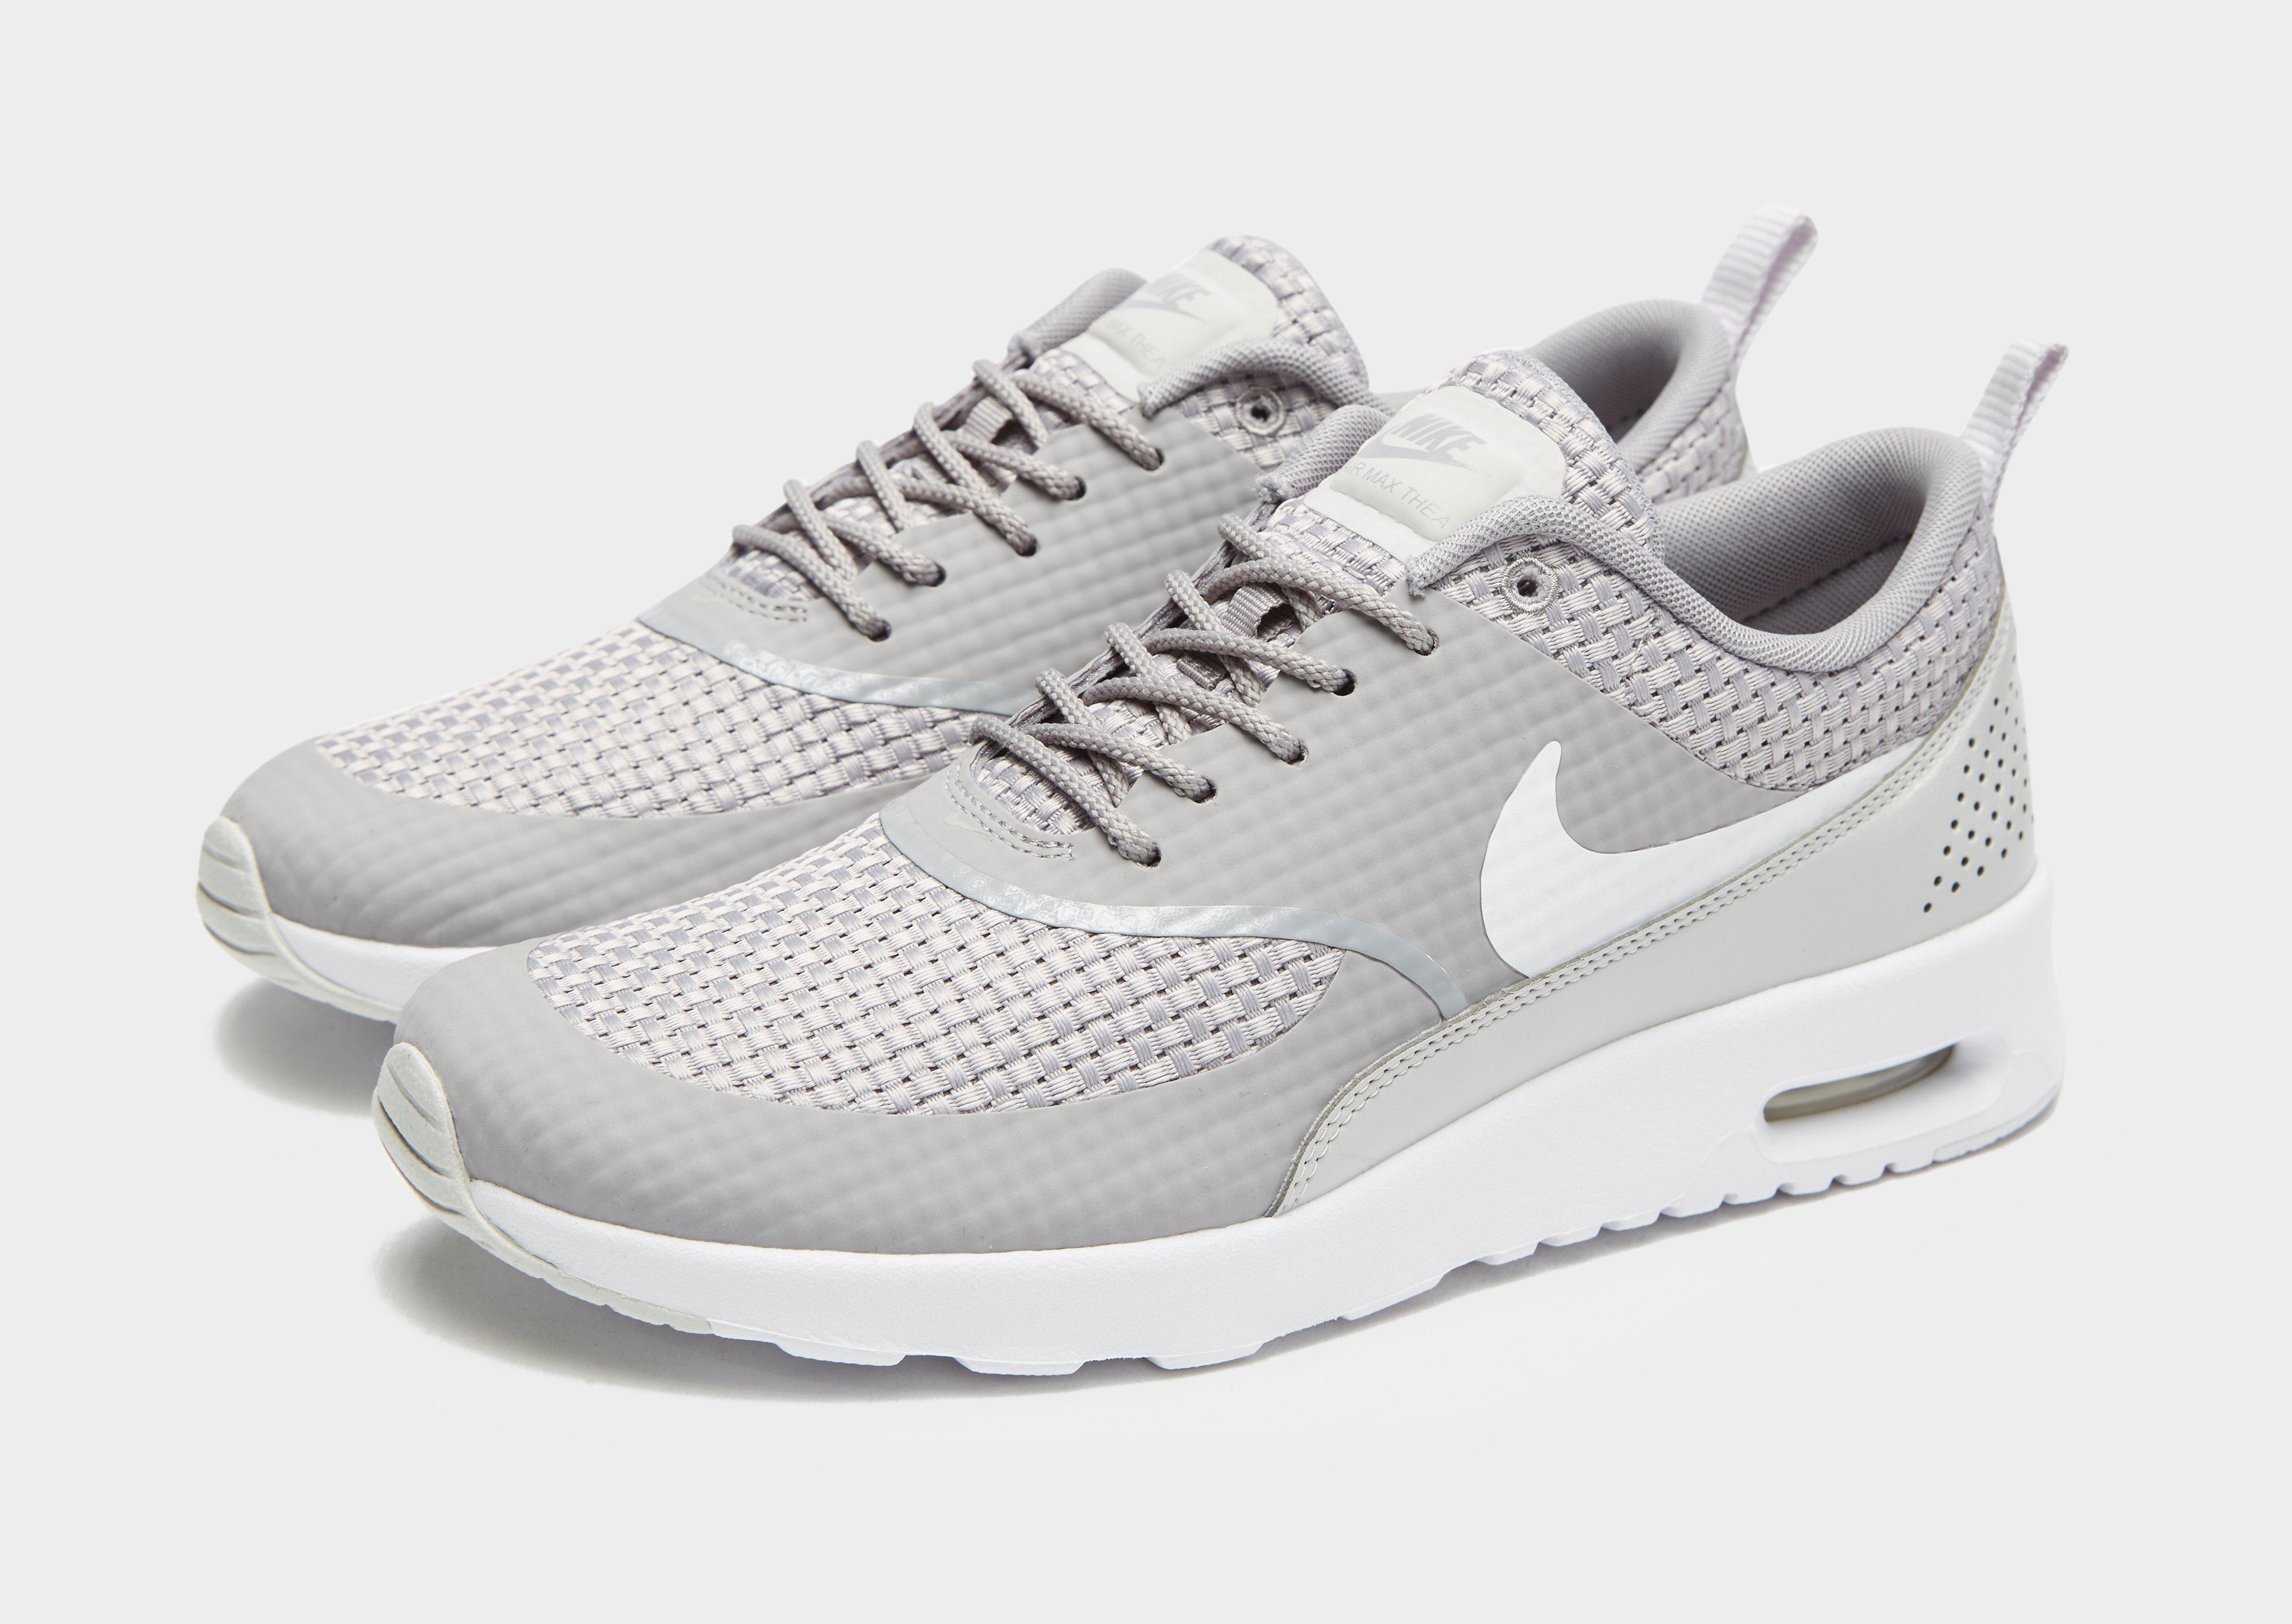 806b001a5b Lyst - Nike Air Max Thea Woven in Gray